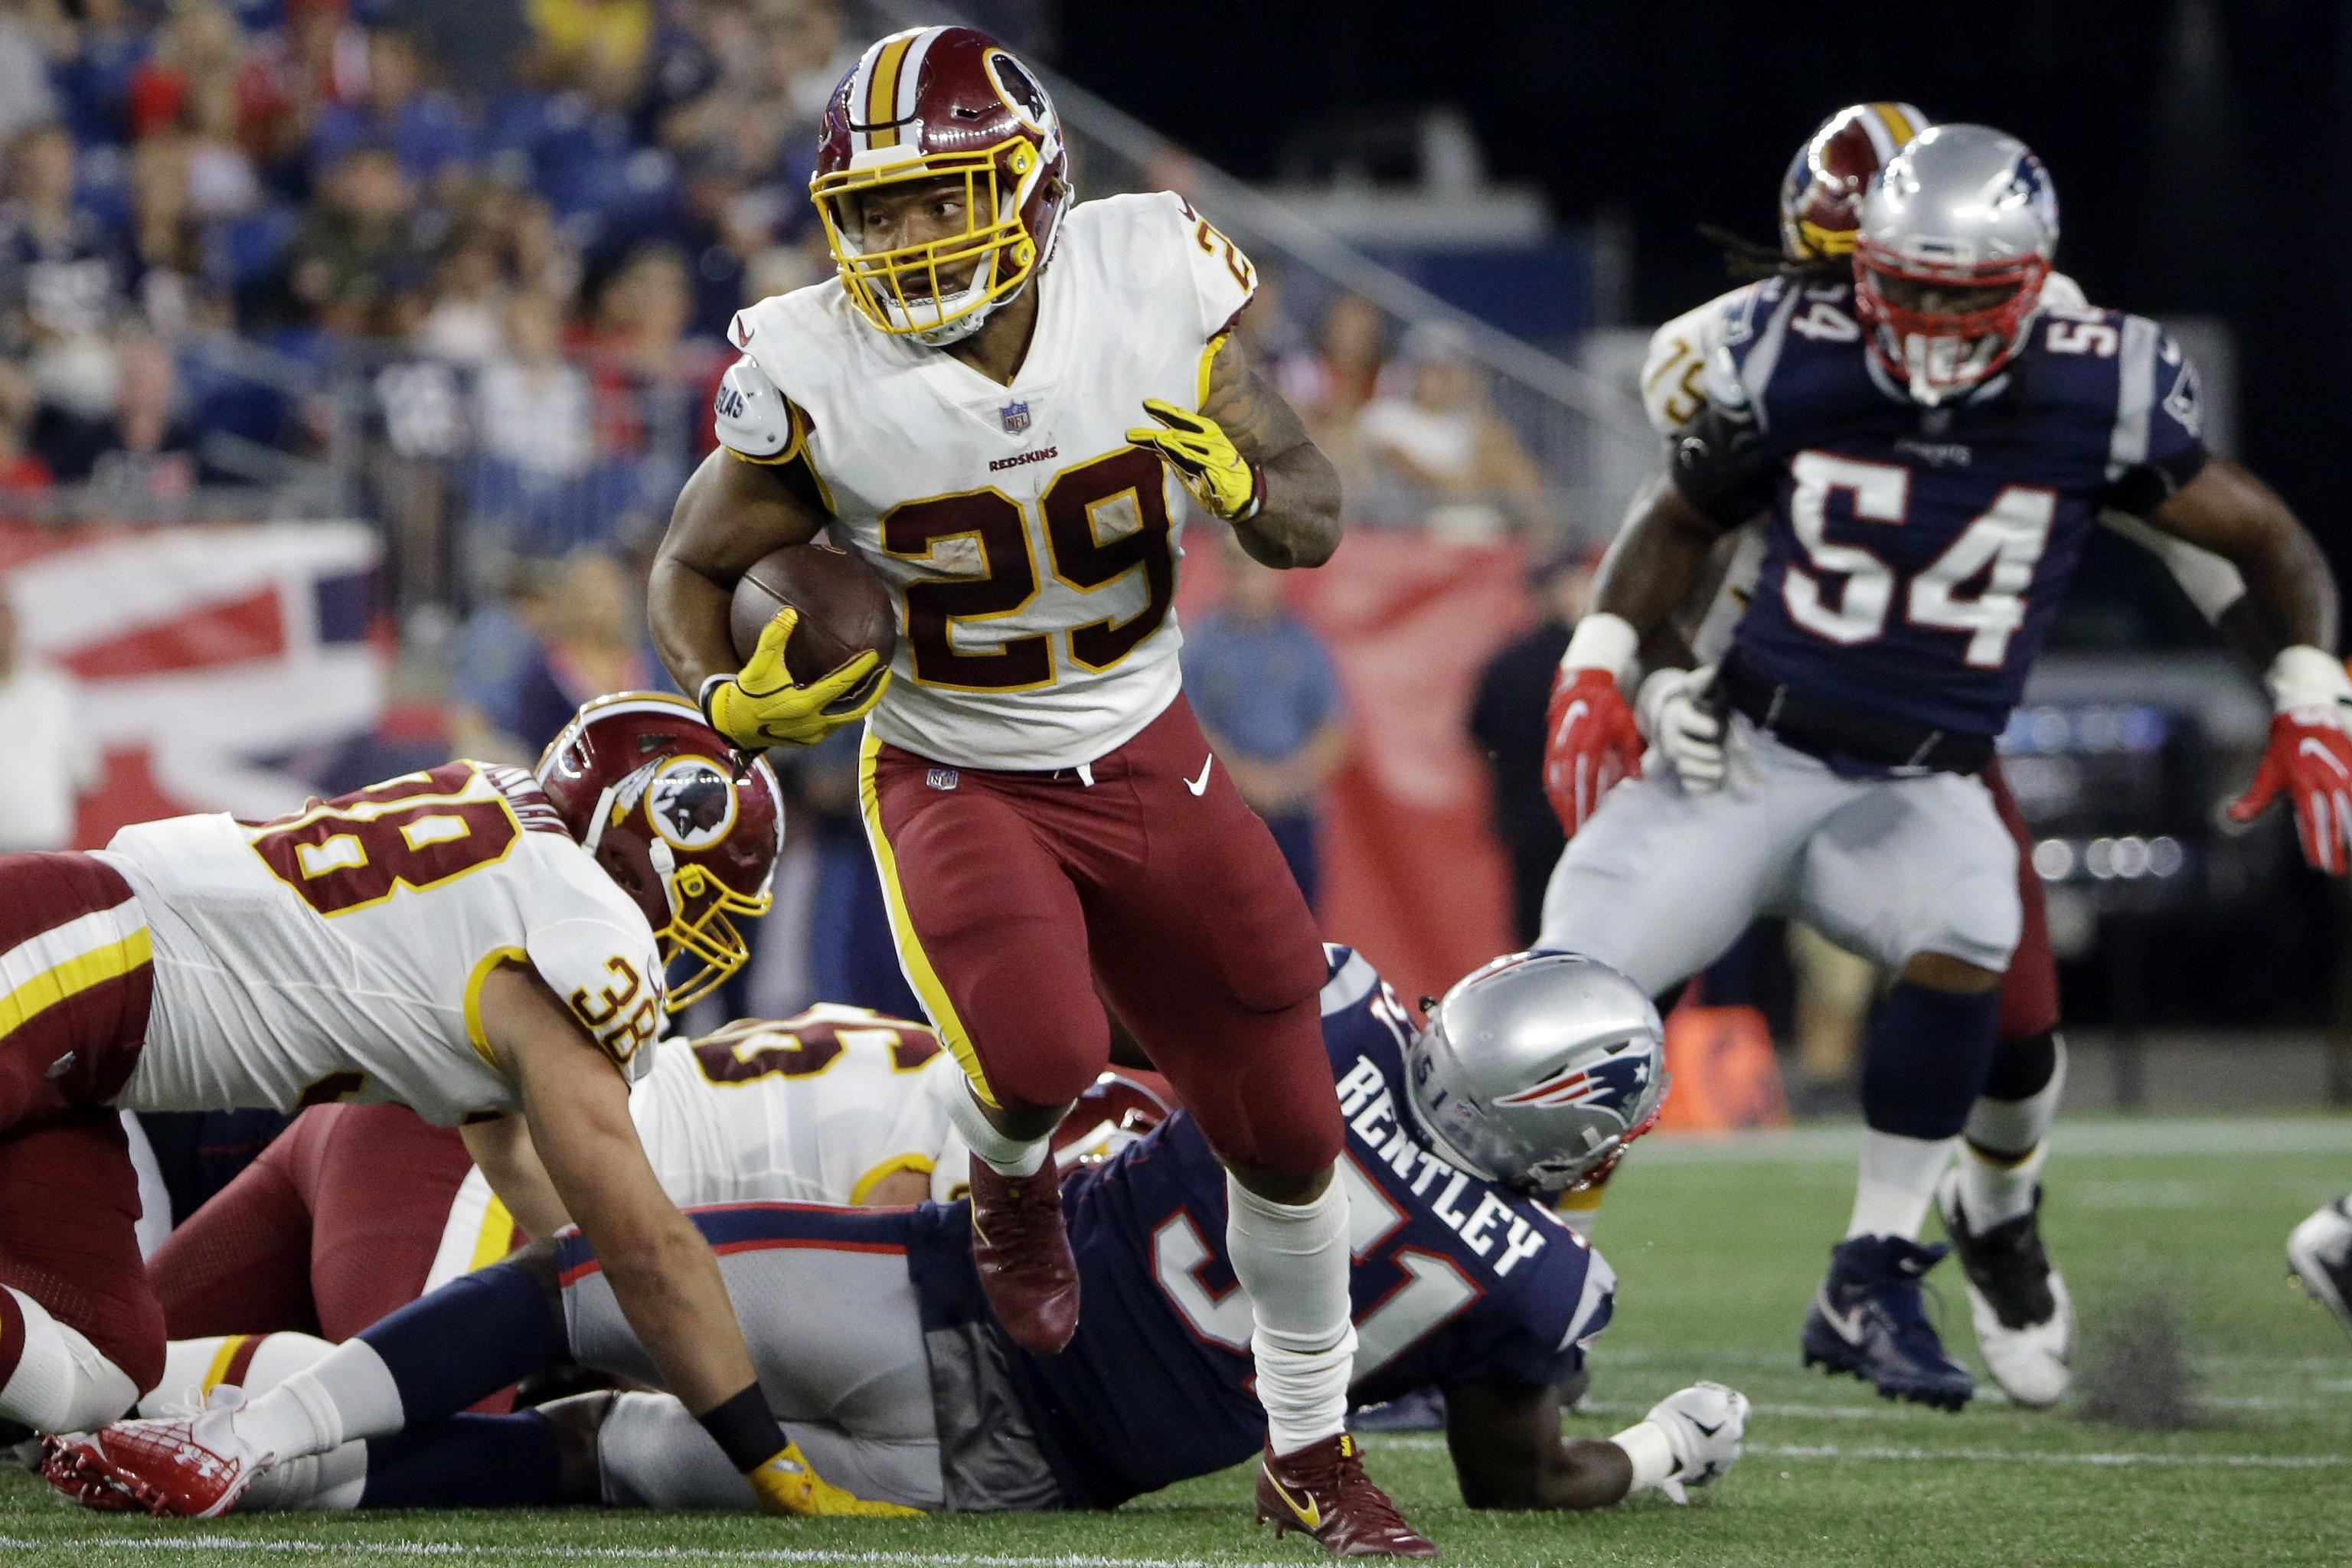 Report: Redskins' Derrius Guice Suffers Hamstring Injury; Questionable for Camp